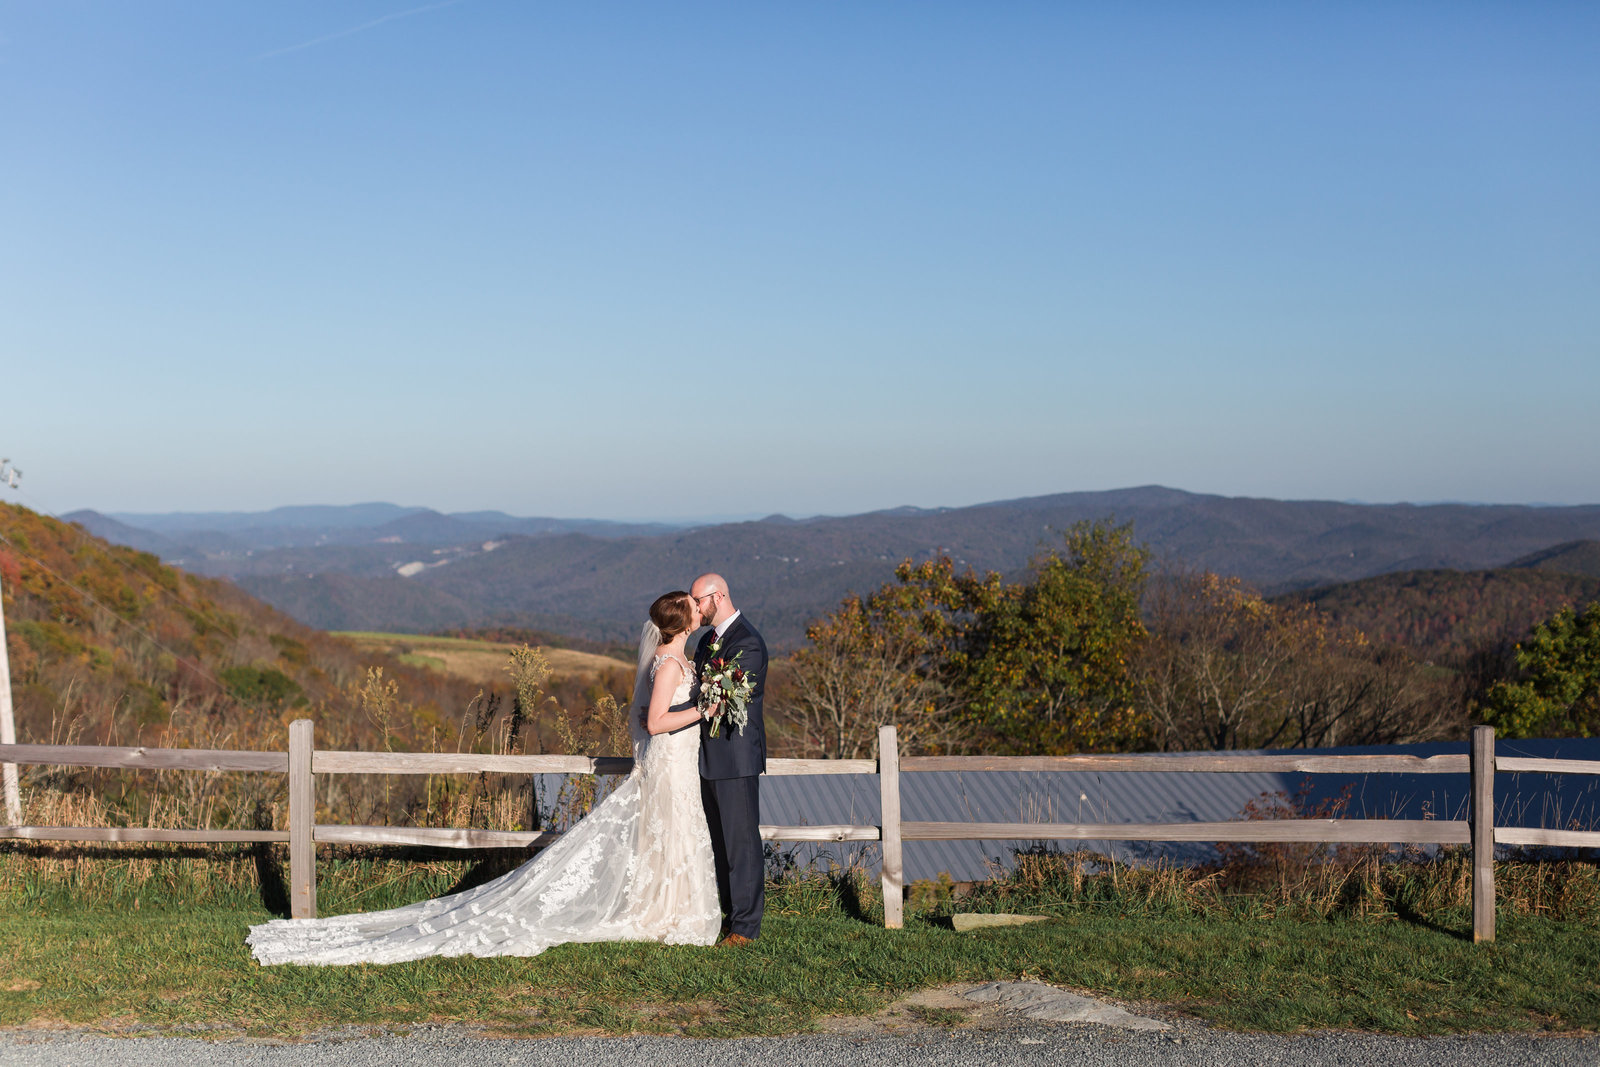 Vinny and Jenna Married-Samantha Laffoon Photography-151